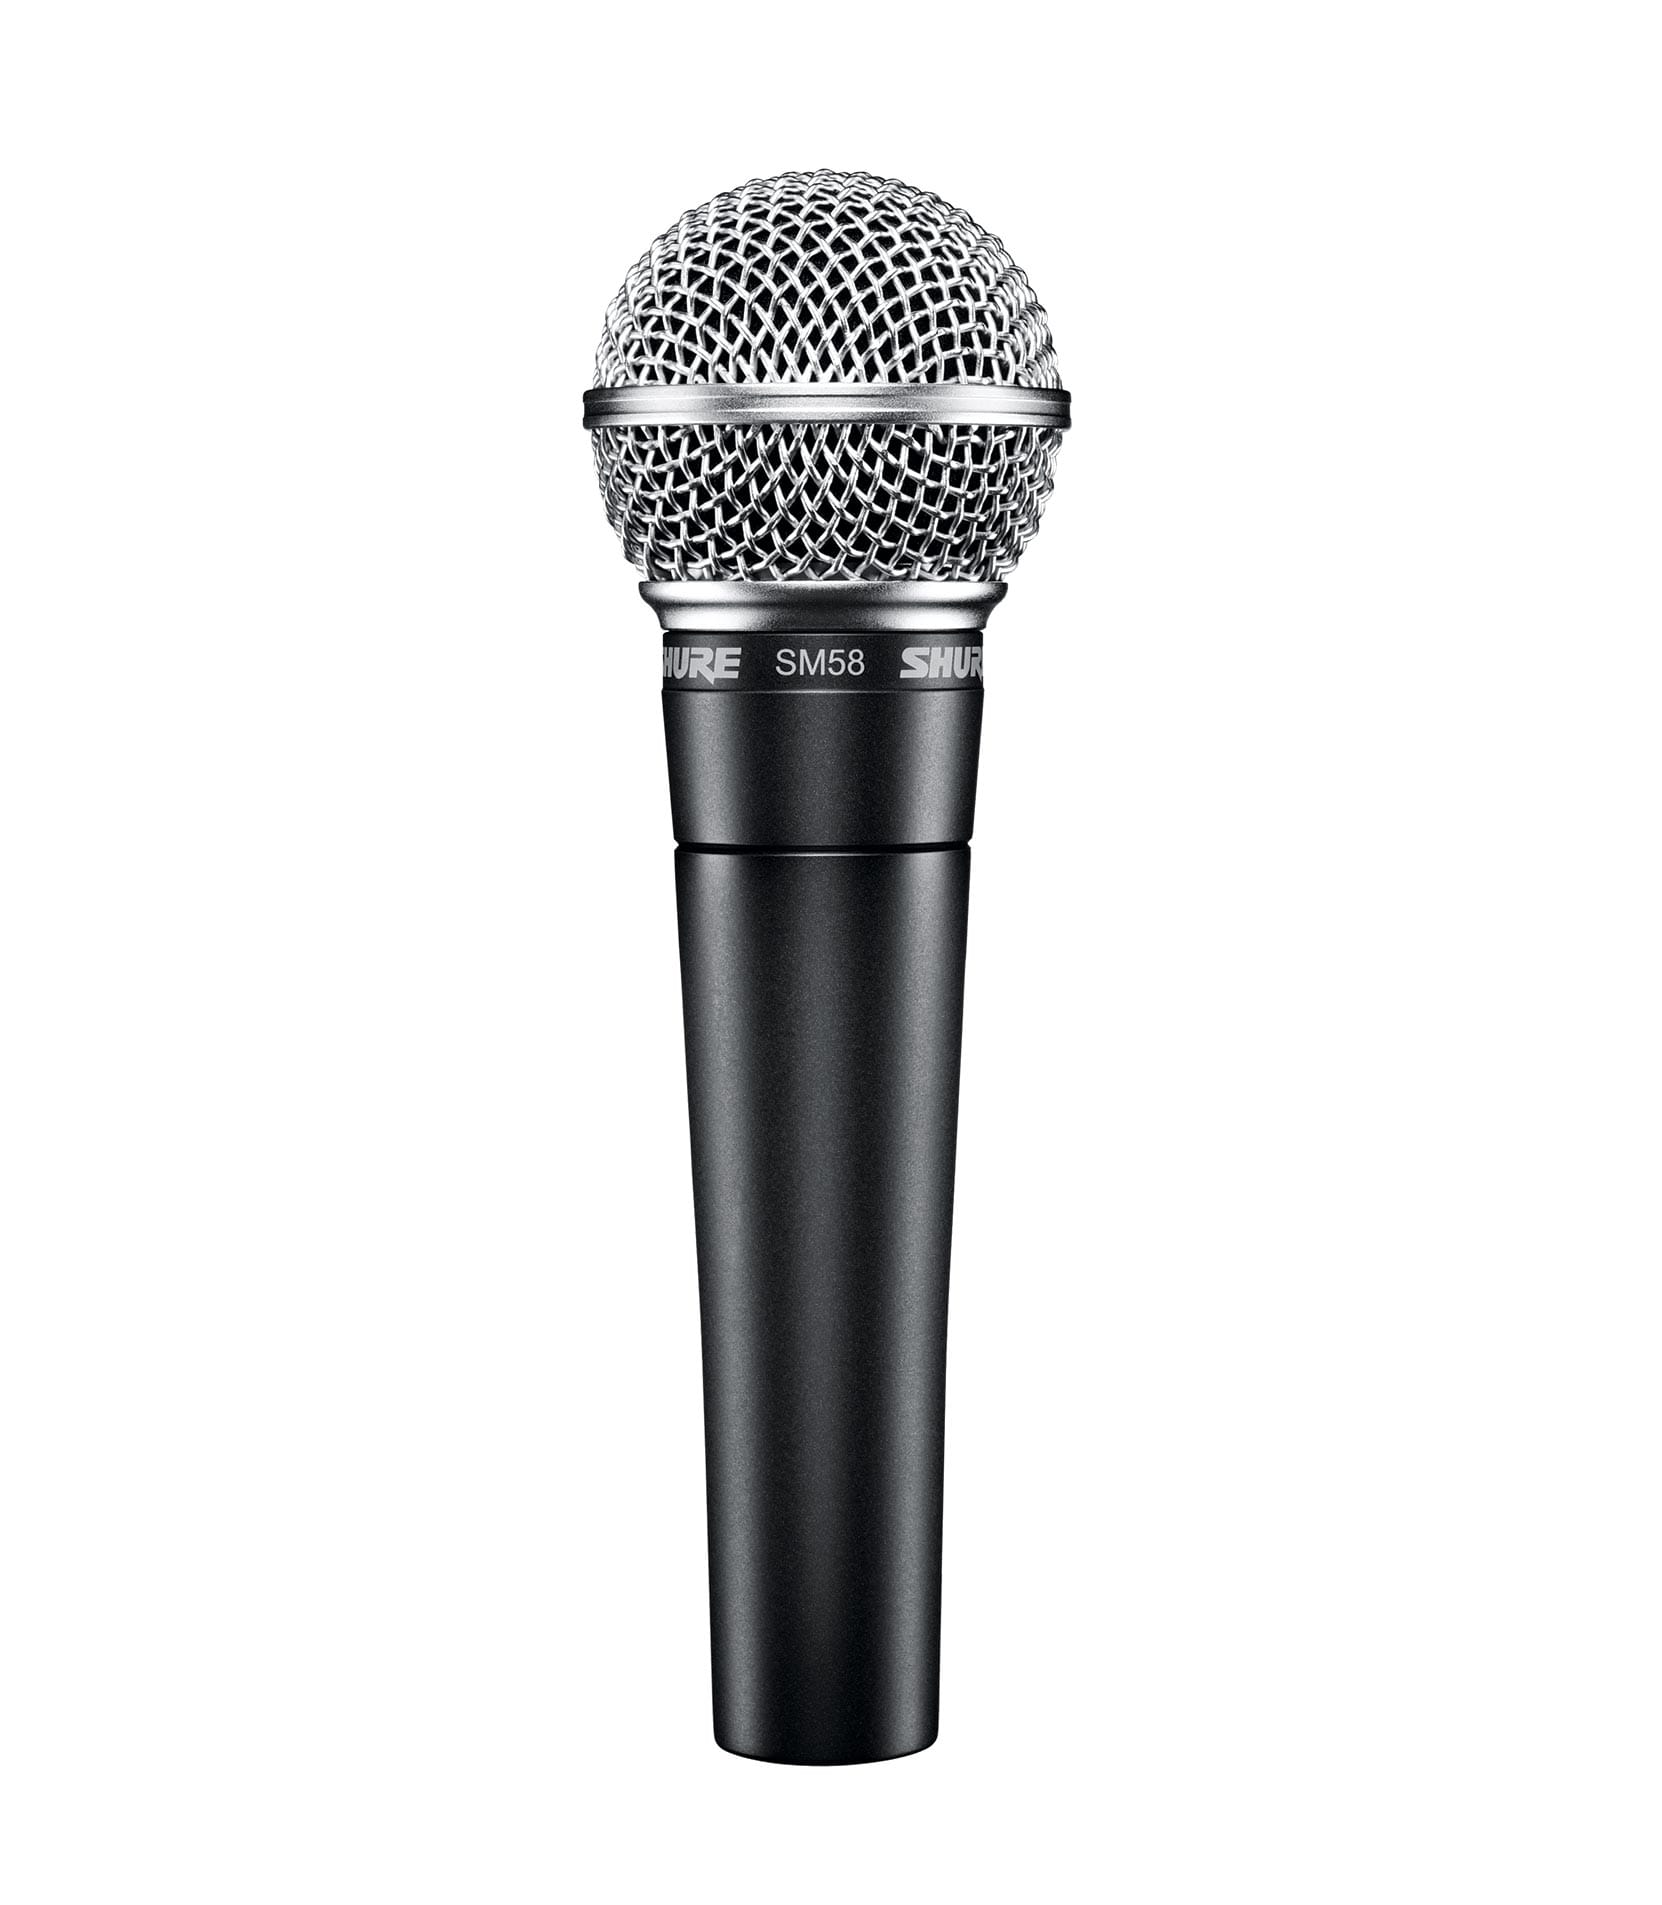 SM58 X2U X microphone with XLR USB adapter